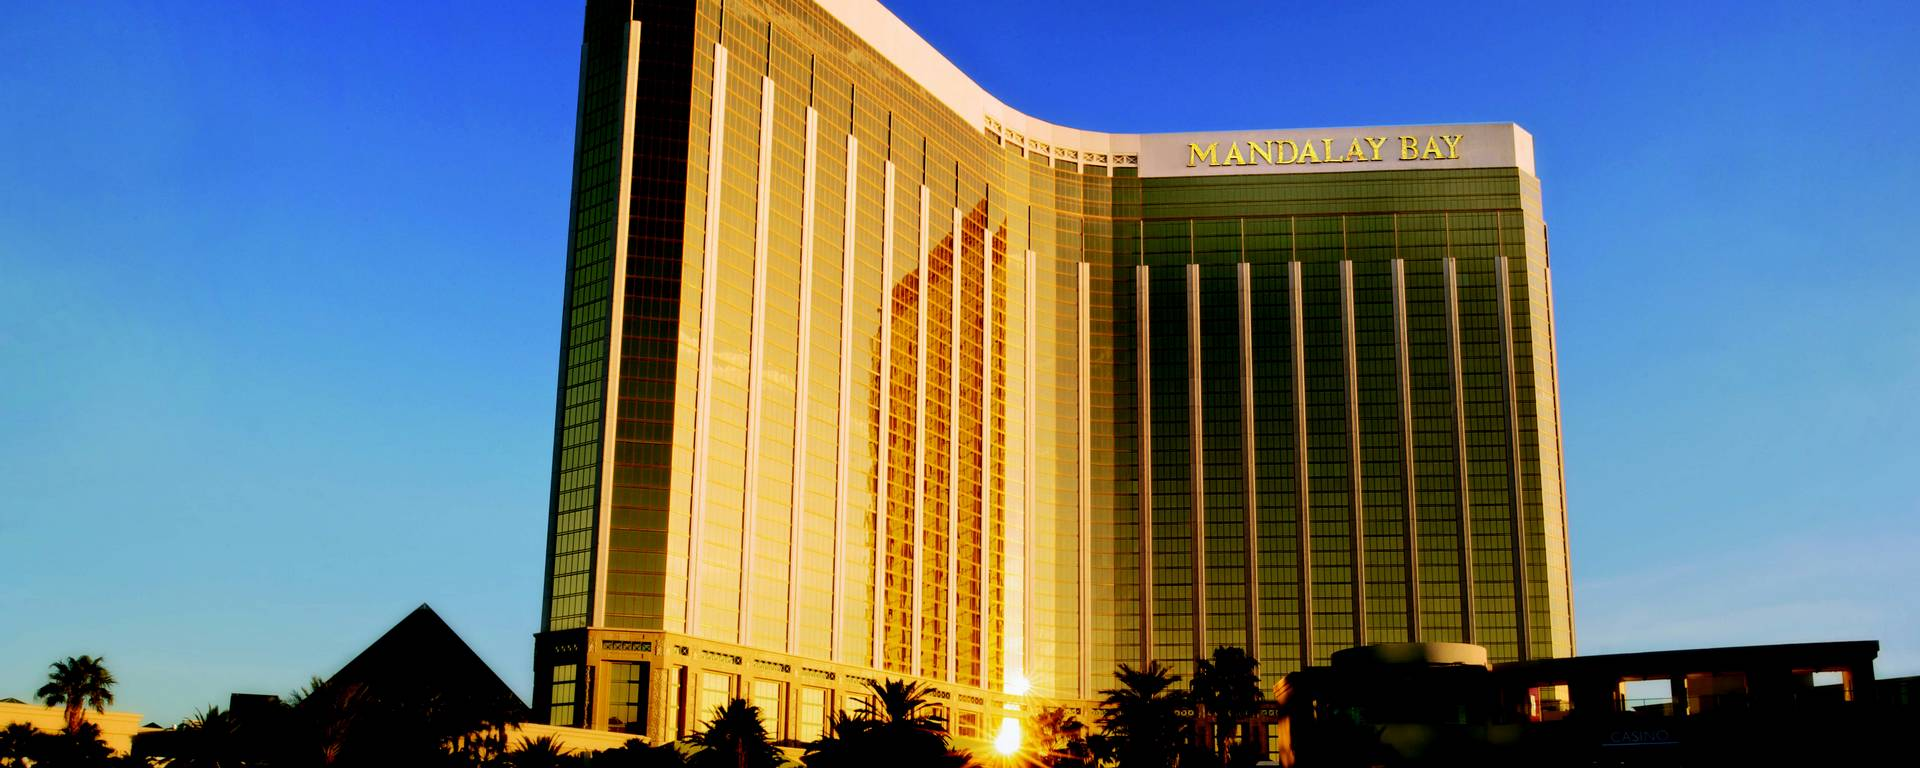 Mandalay Bay Hotel Las Vegas Deals & Promo Codes